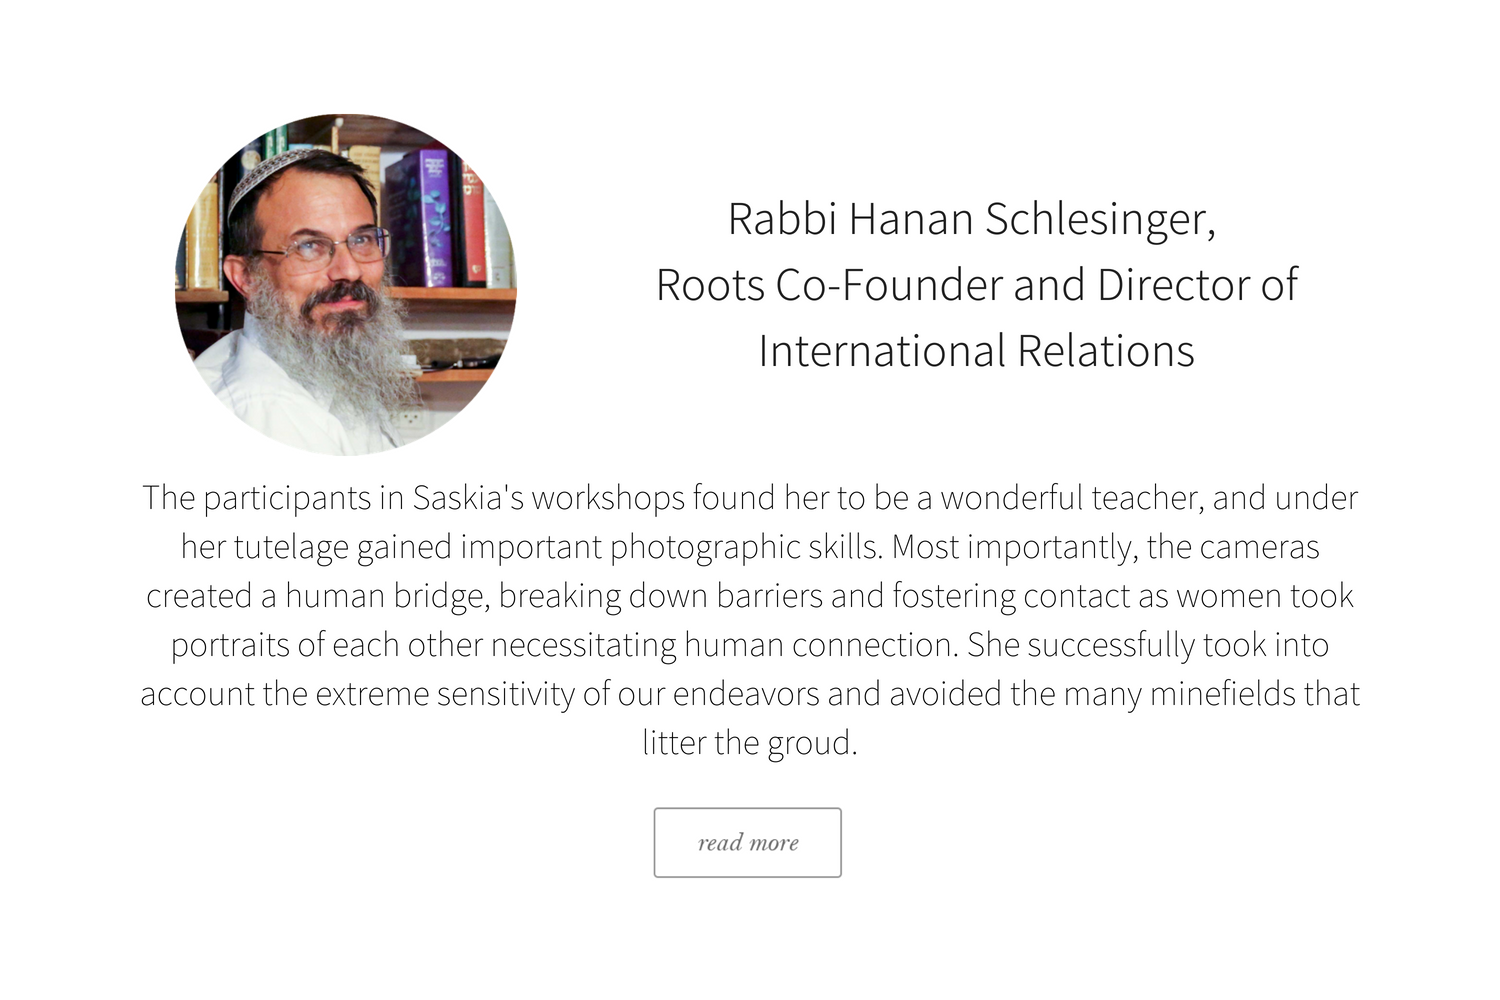 saskia-keeley-photography-rabbi-hanan-helsinger-roots-ngo-testimonial.png